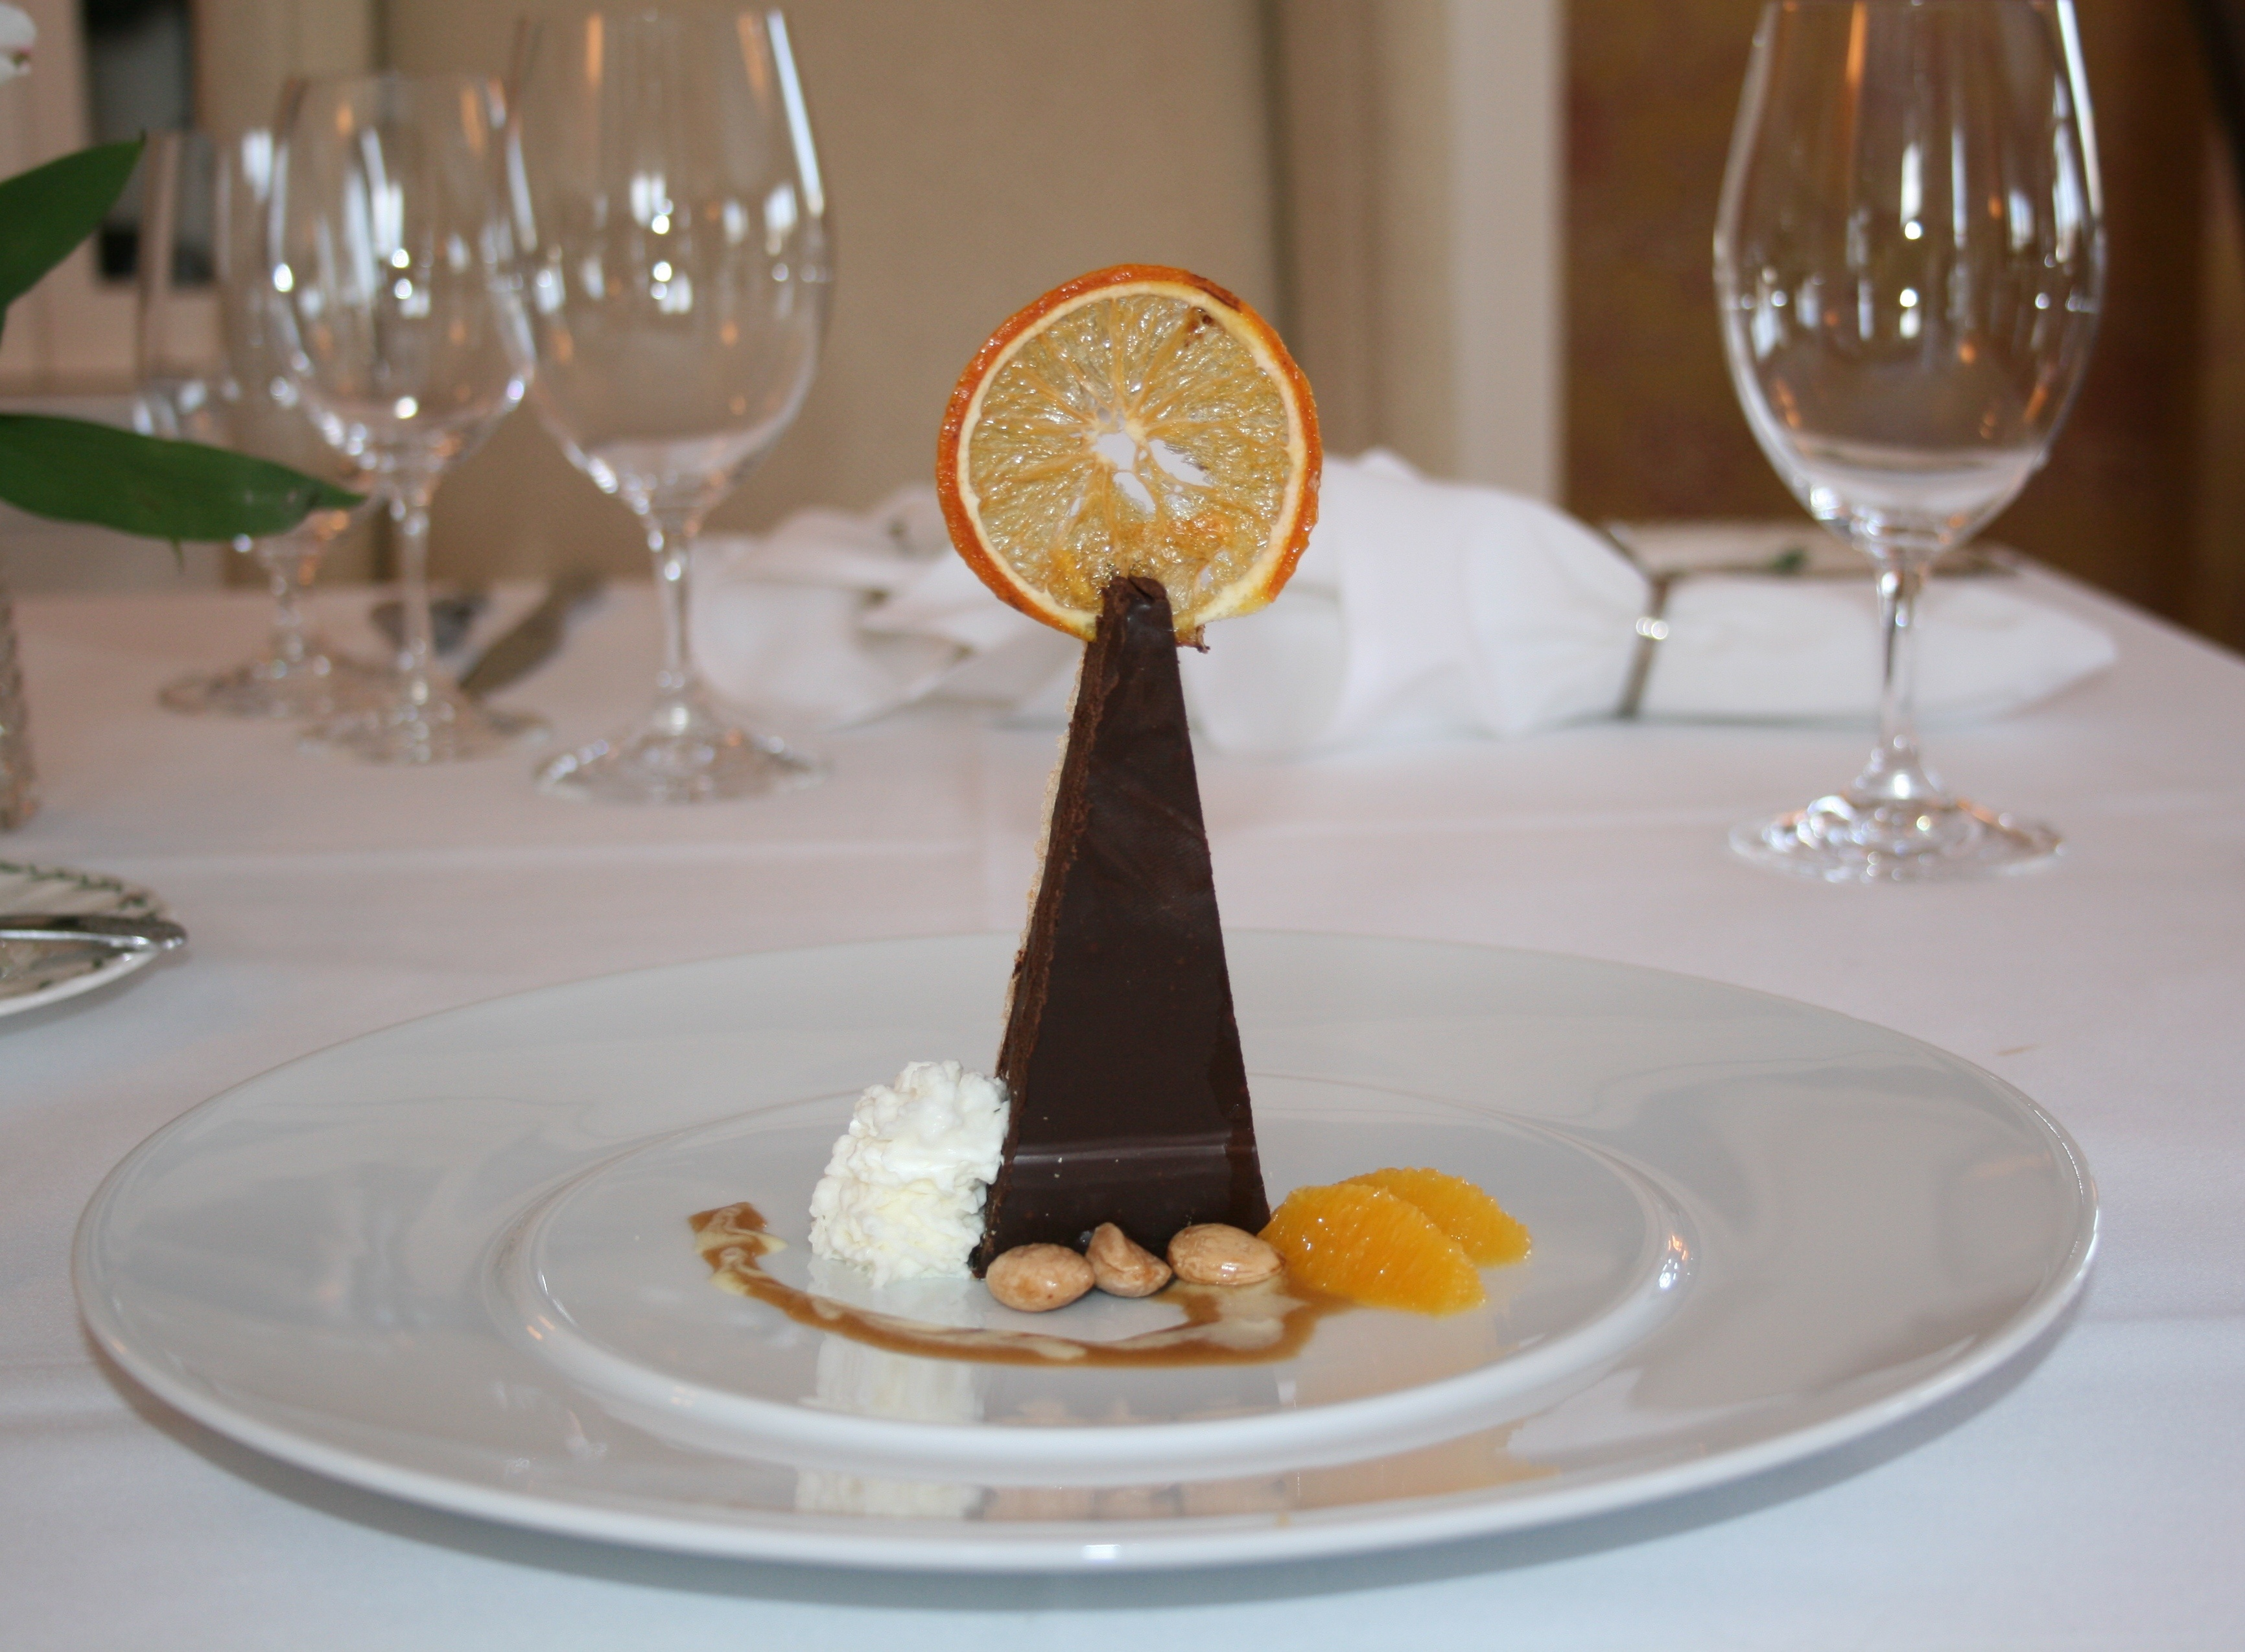 Check Out This Chocolate Pyramid Tart from Val Fortin